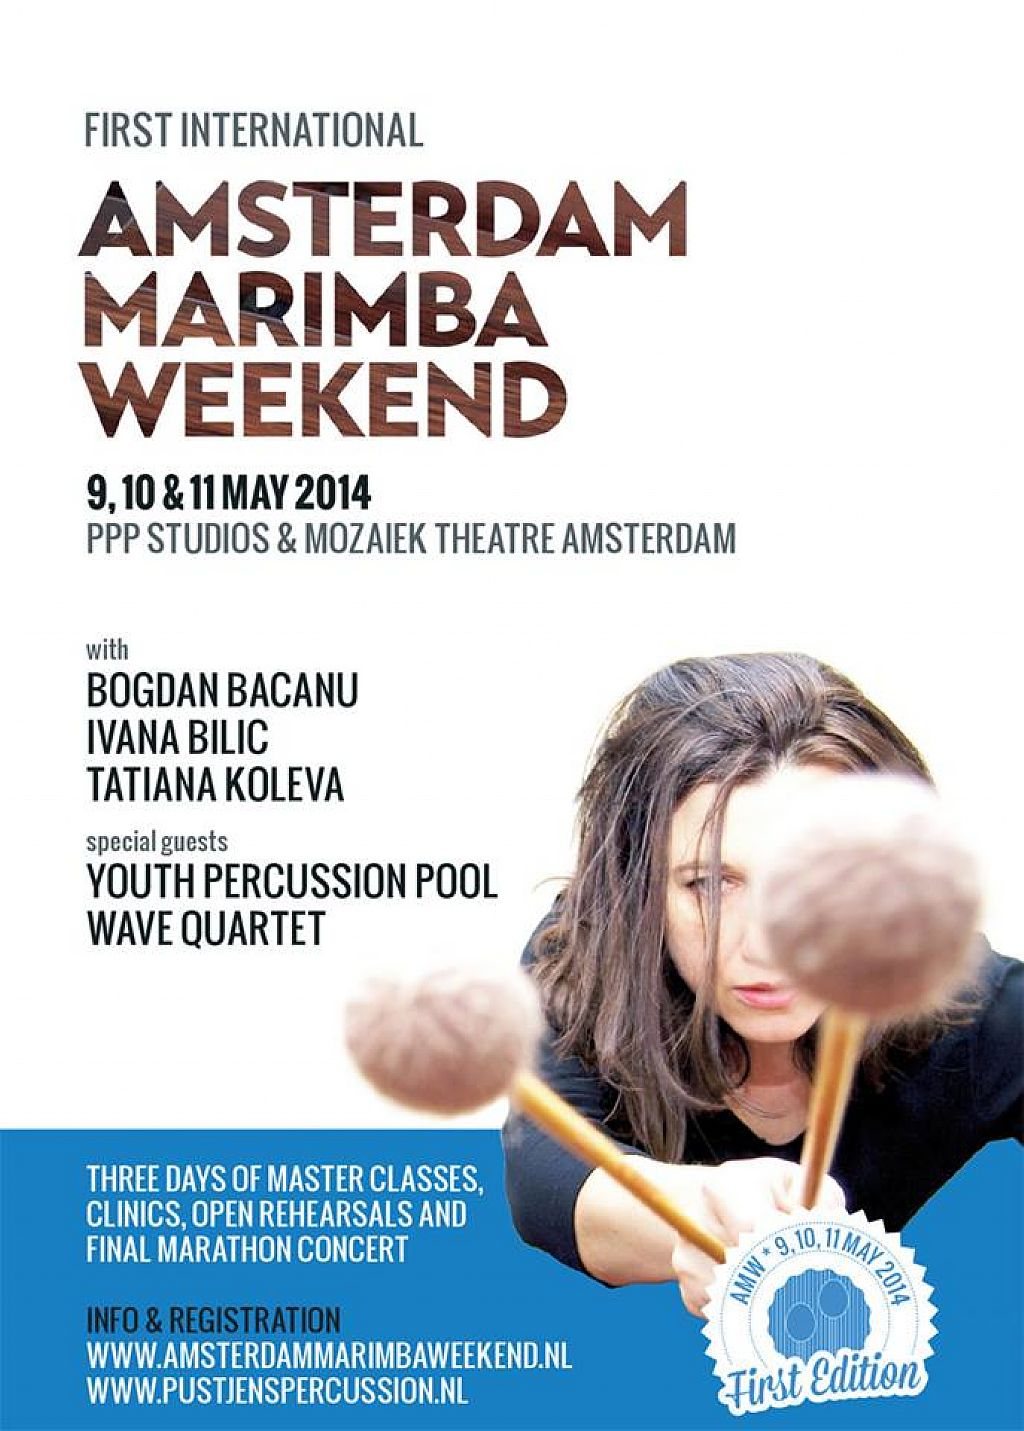 Amsterdam Marimba Weekend